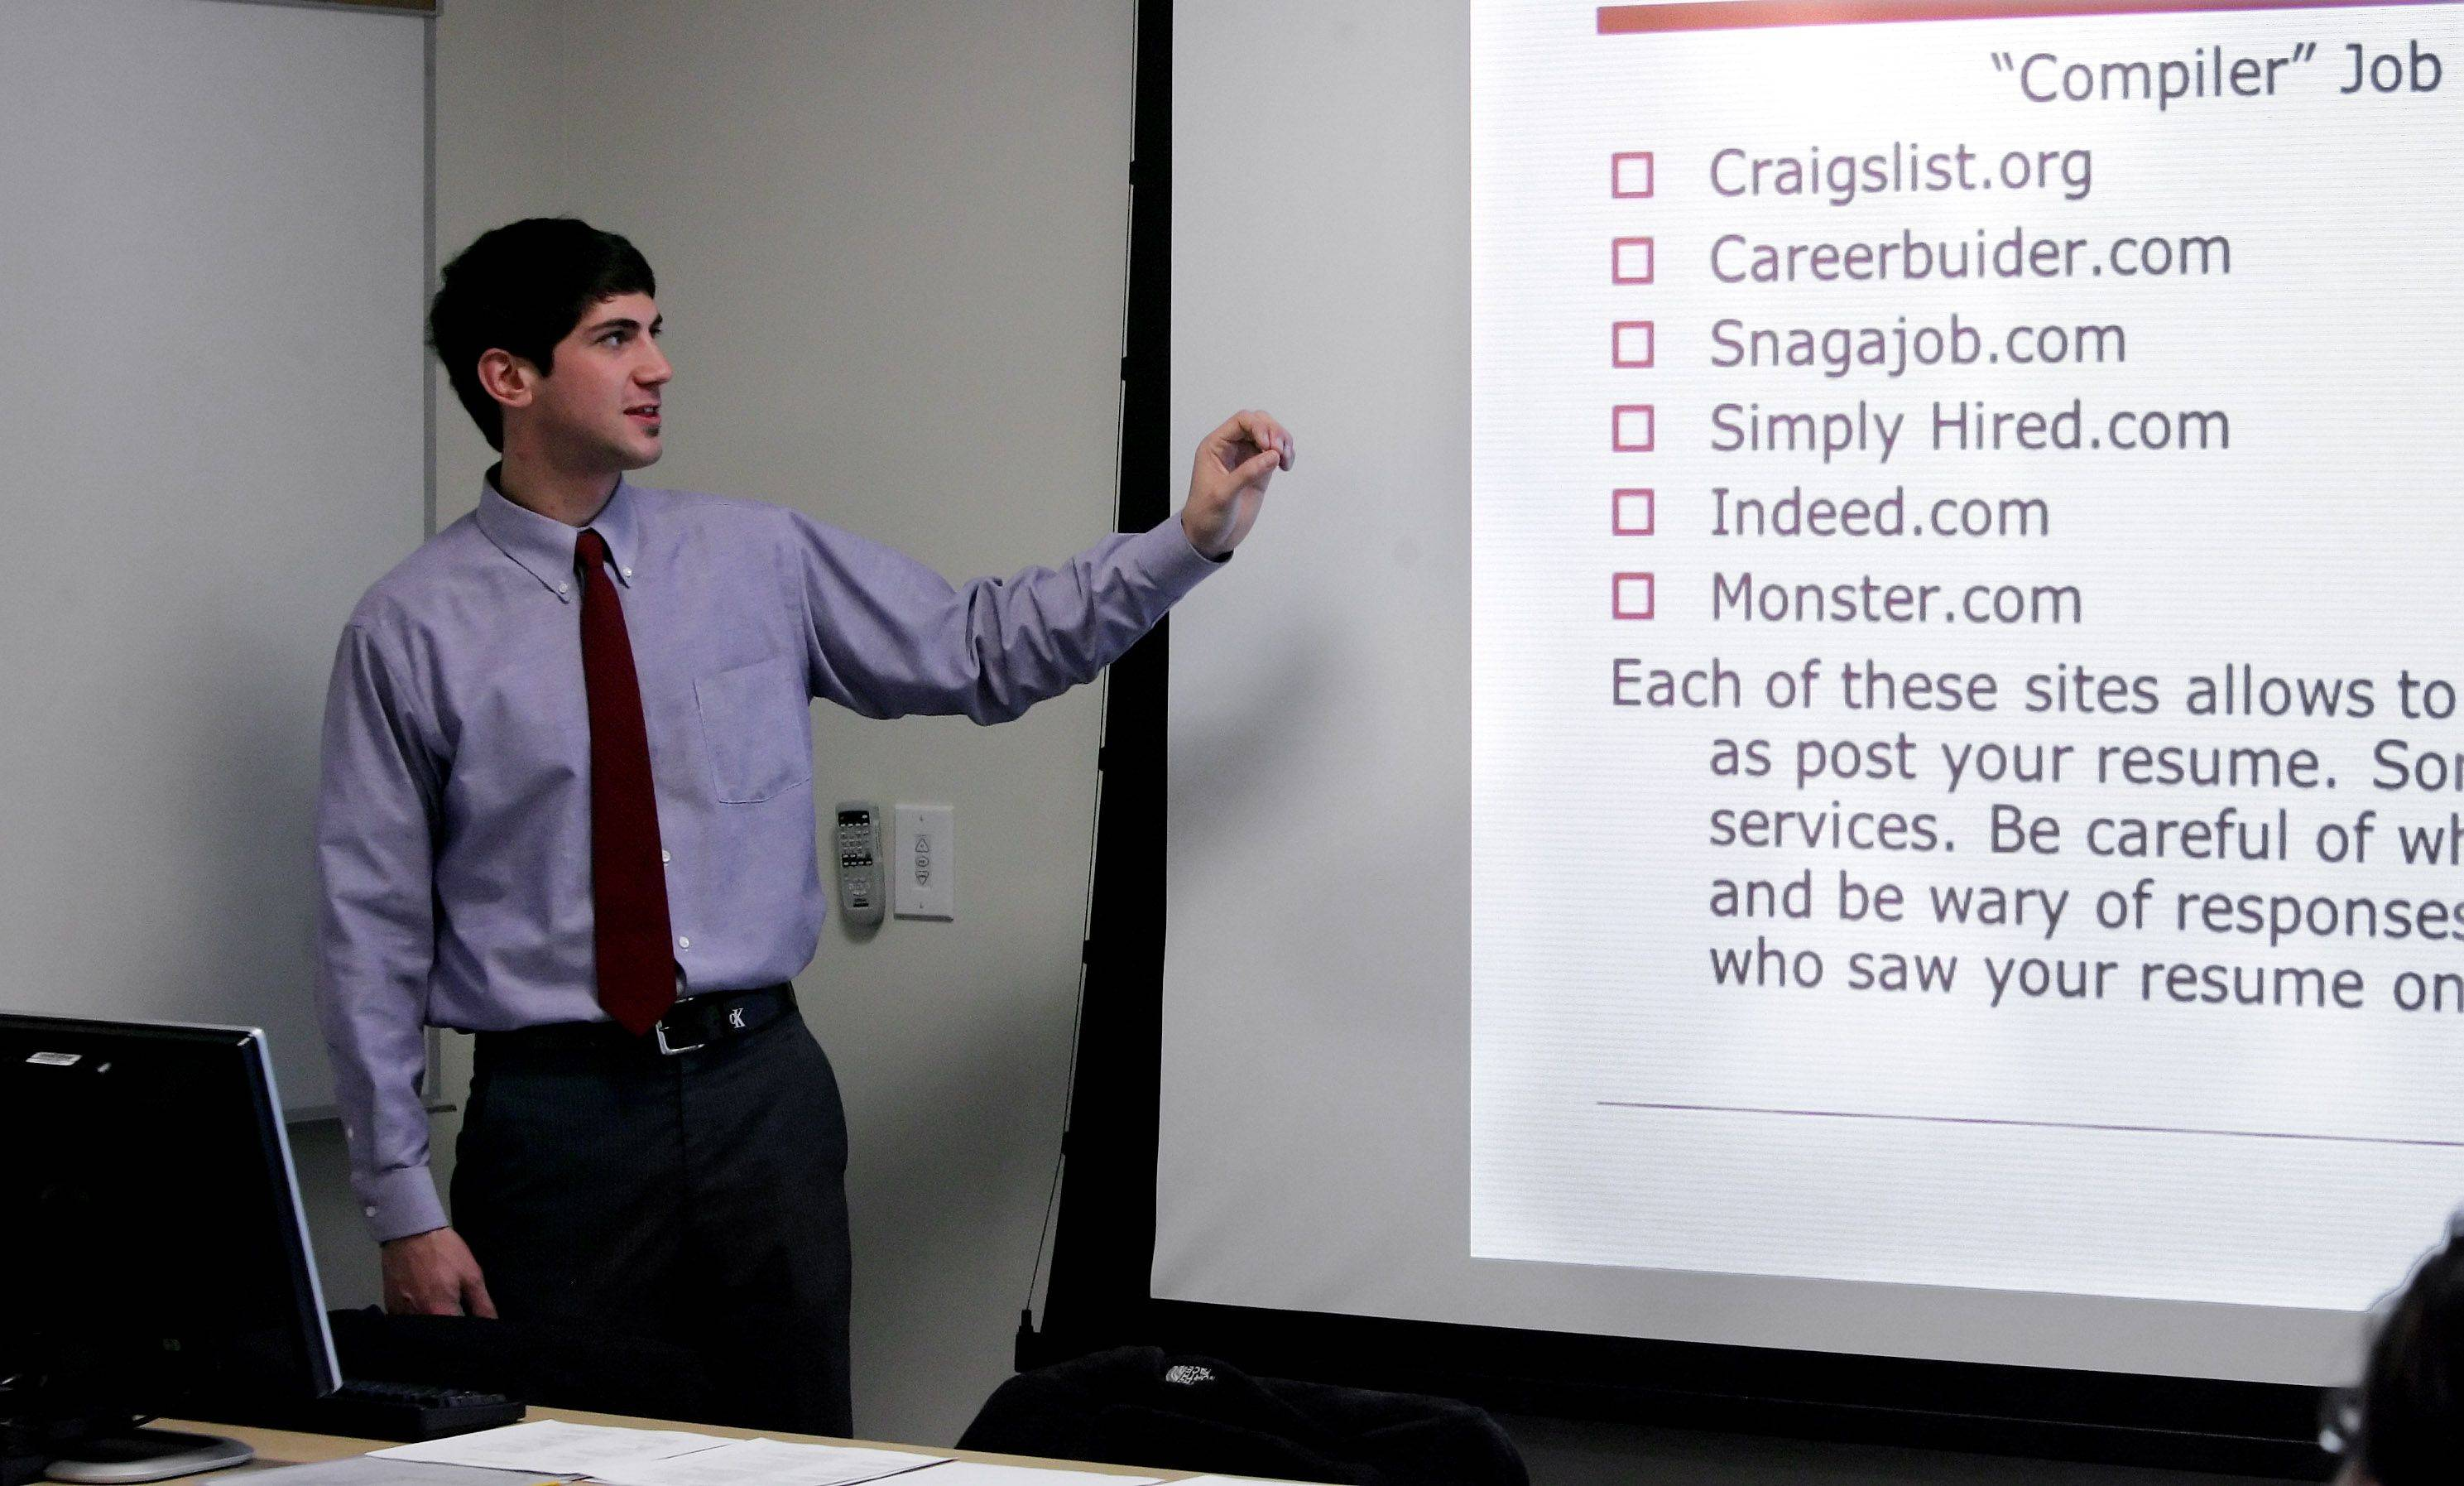 Employment specialist Michael Garamoni of Countryside Association discusses online job searches during a workshop at the Cook Park Library in Libertyville. Libraries have become resources for unemployed people during the nation's economic struggles.